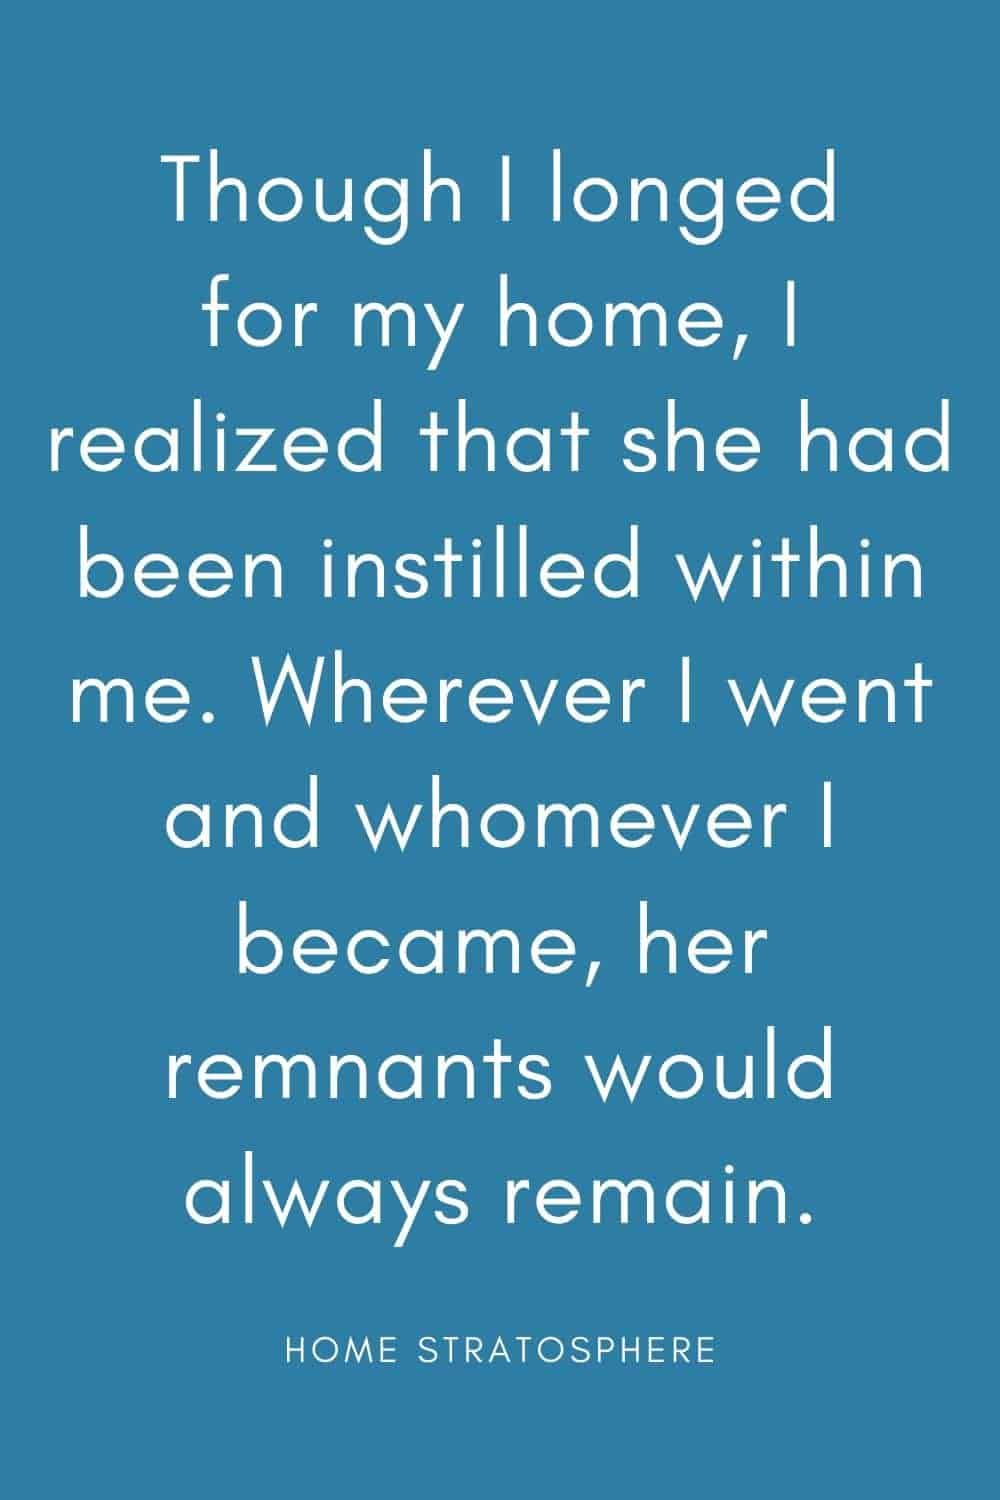 """Though I longed for my home, I realized that she had been instilled within me. Wherever I went and whomever I became, her remnants would always remain."""